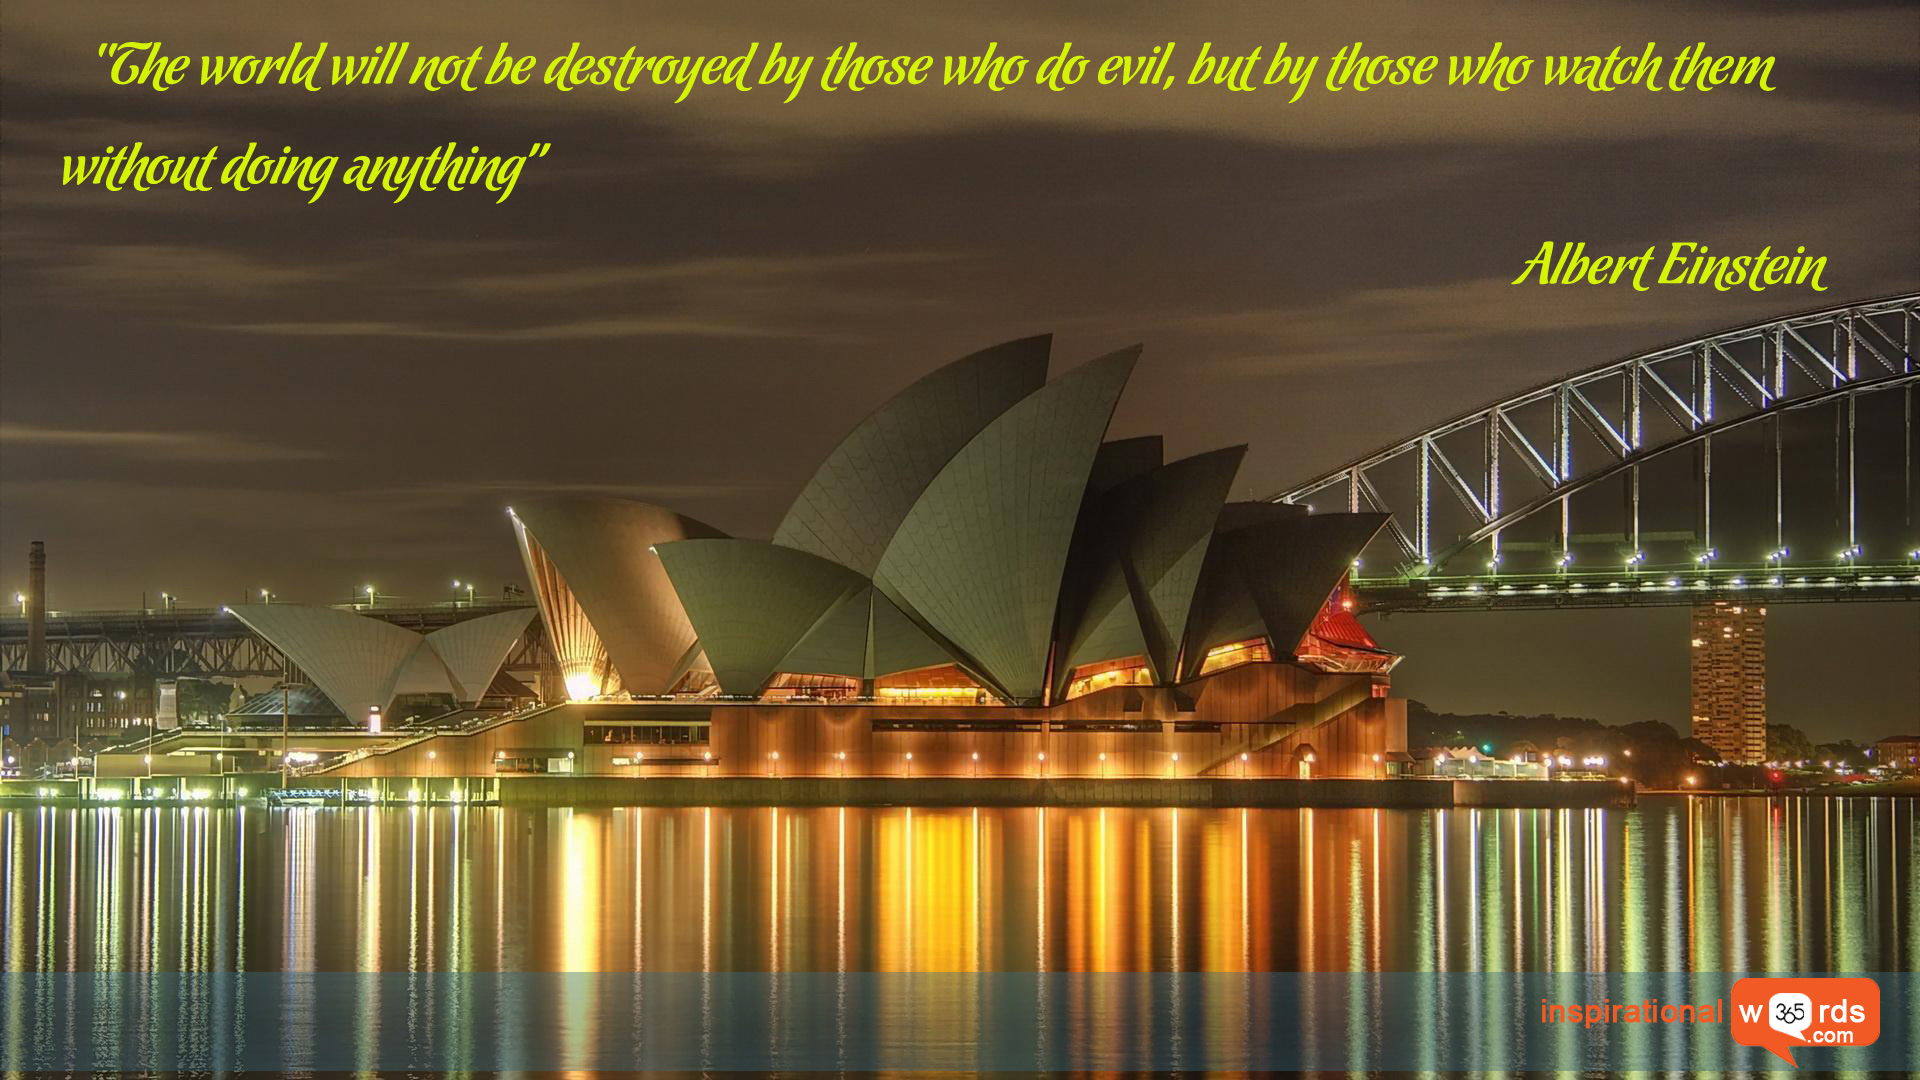 Inspirational Wallpaper Quote by Albert Einstein